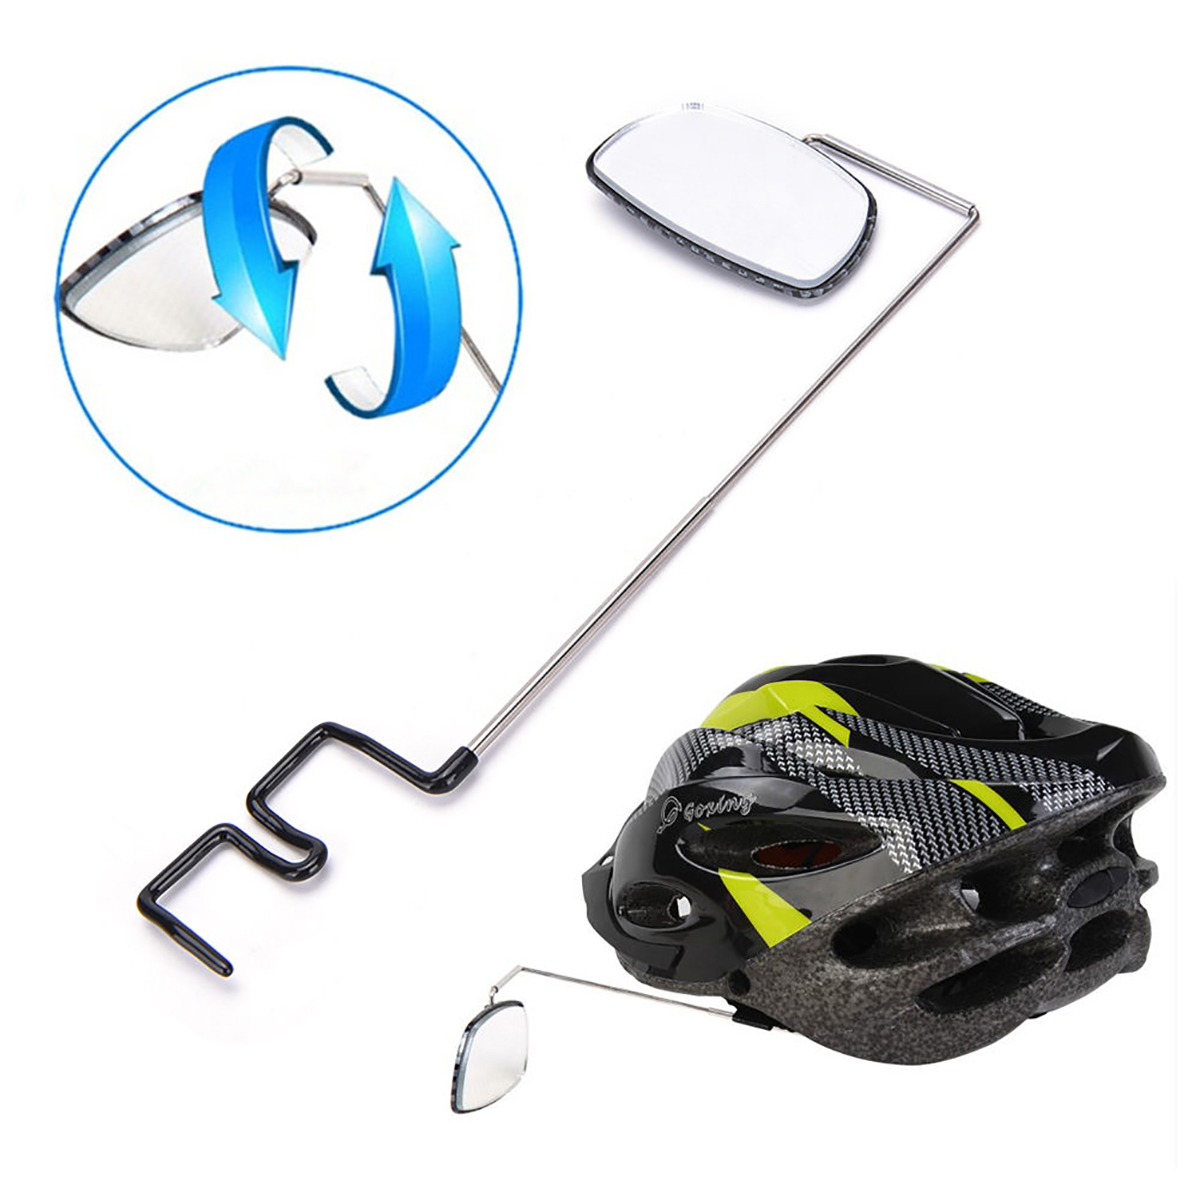 Bicycle Rearview Cycling Riding Helmet Eyeglass Mirror Rearview Adjustable Black Bicycle Rearview Bike Accessories